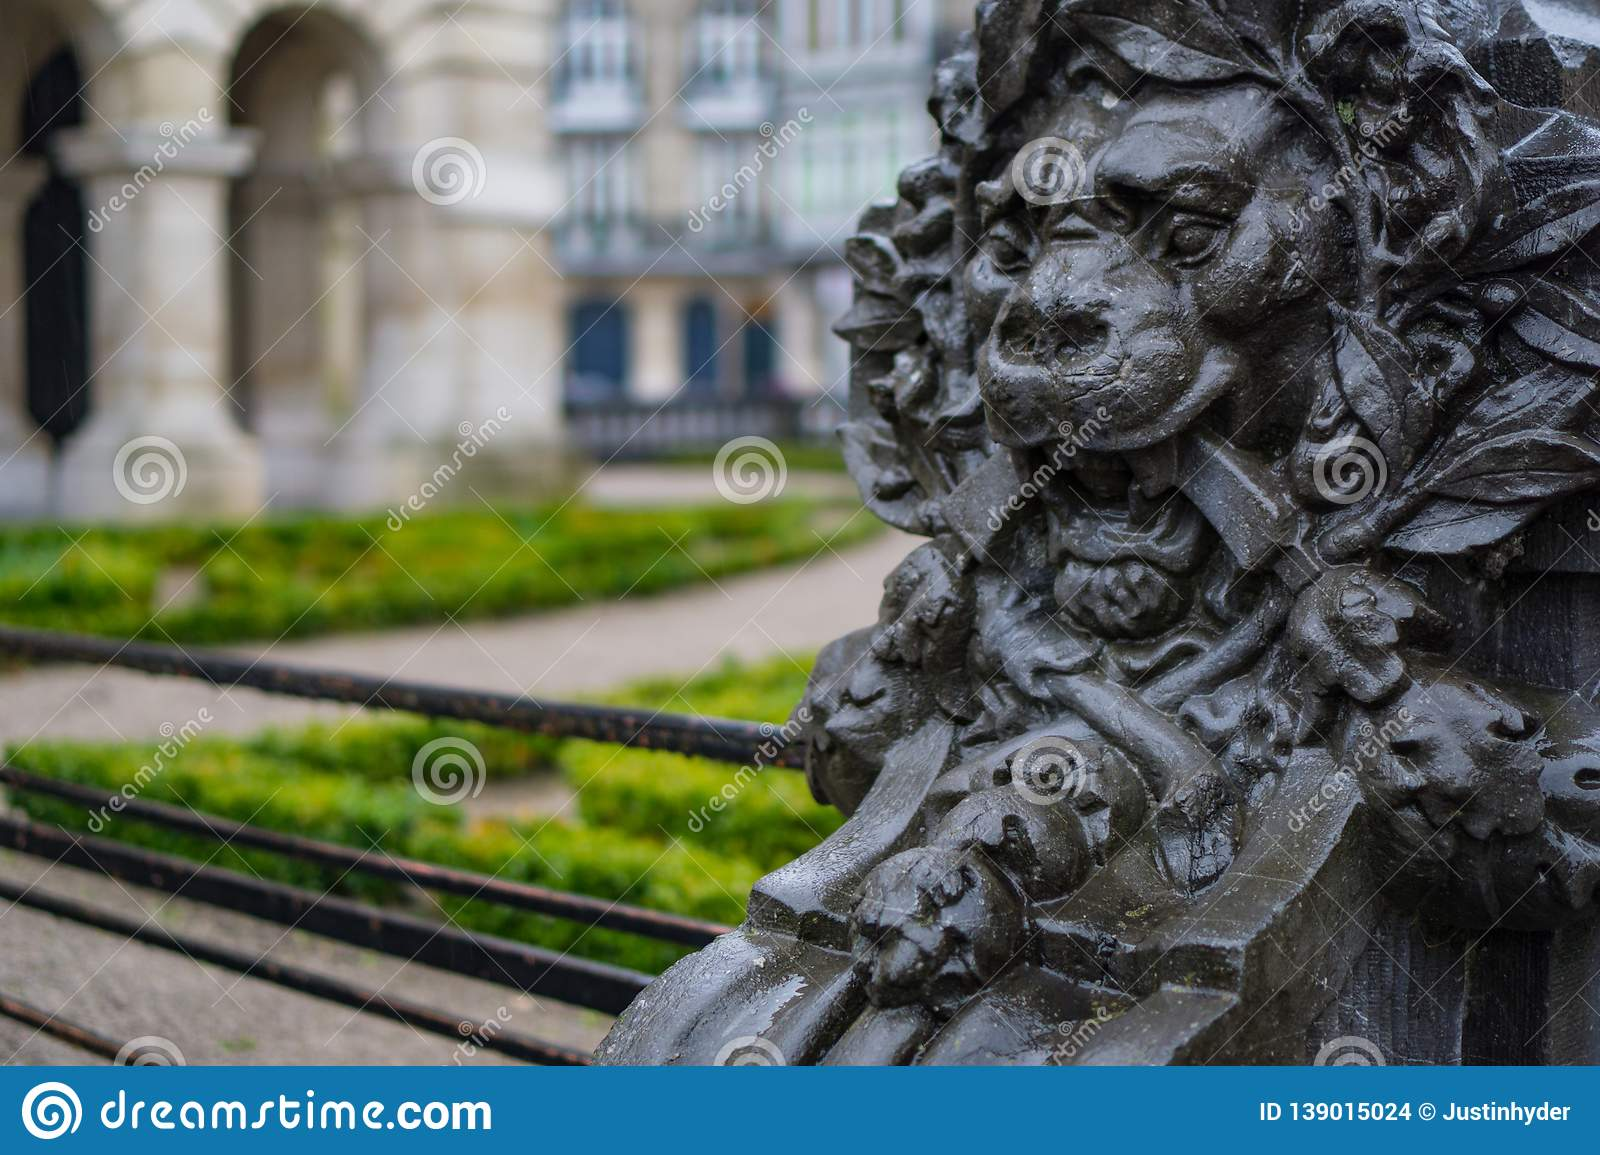 Lion Square in Lille France